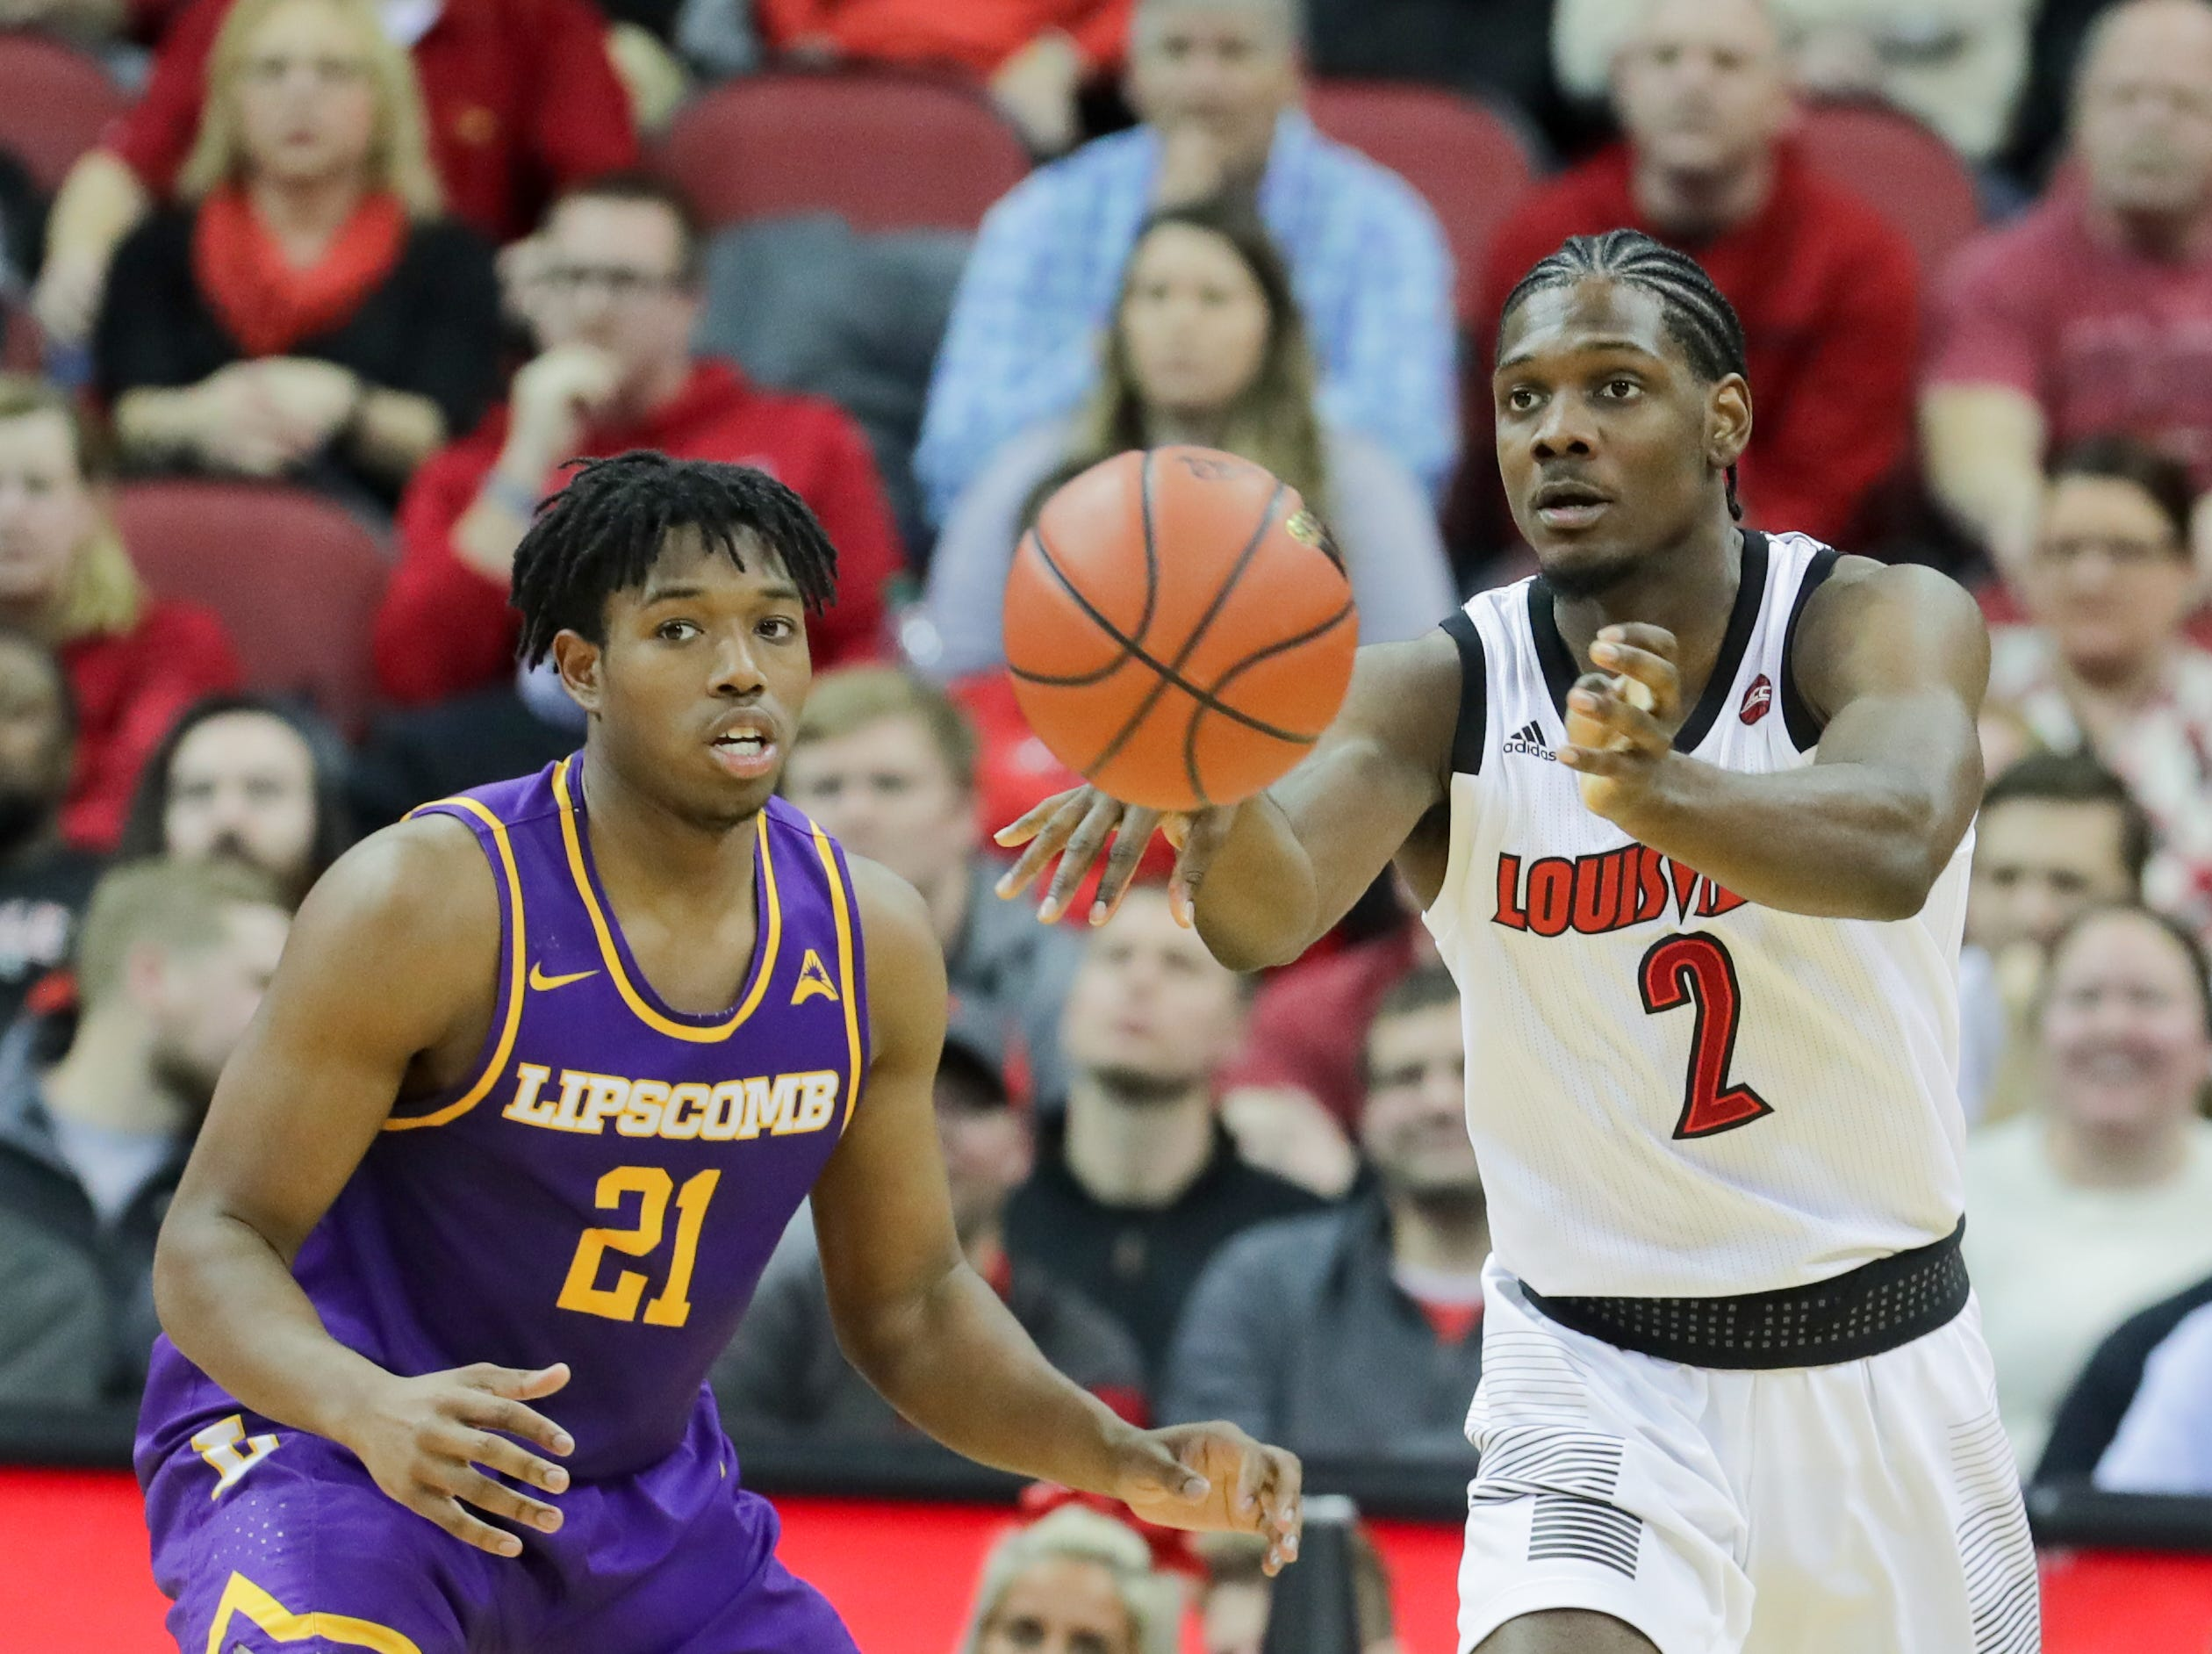 Louisville's Darius Perry passes while being guarded by Lipscomb's Kenny Cooper. 